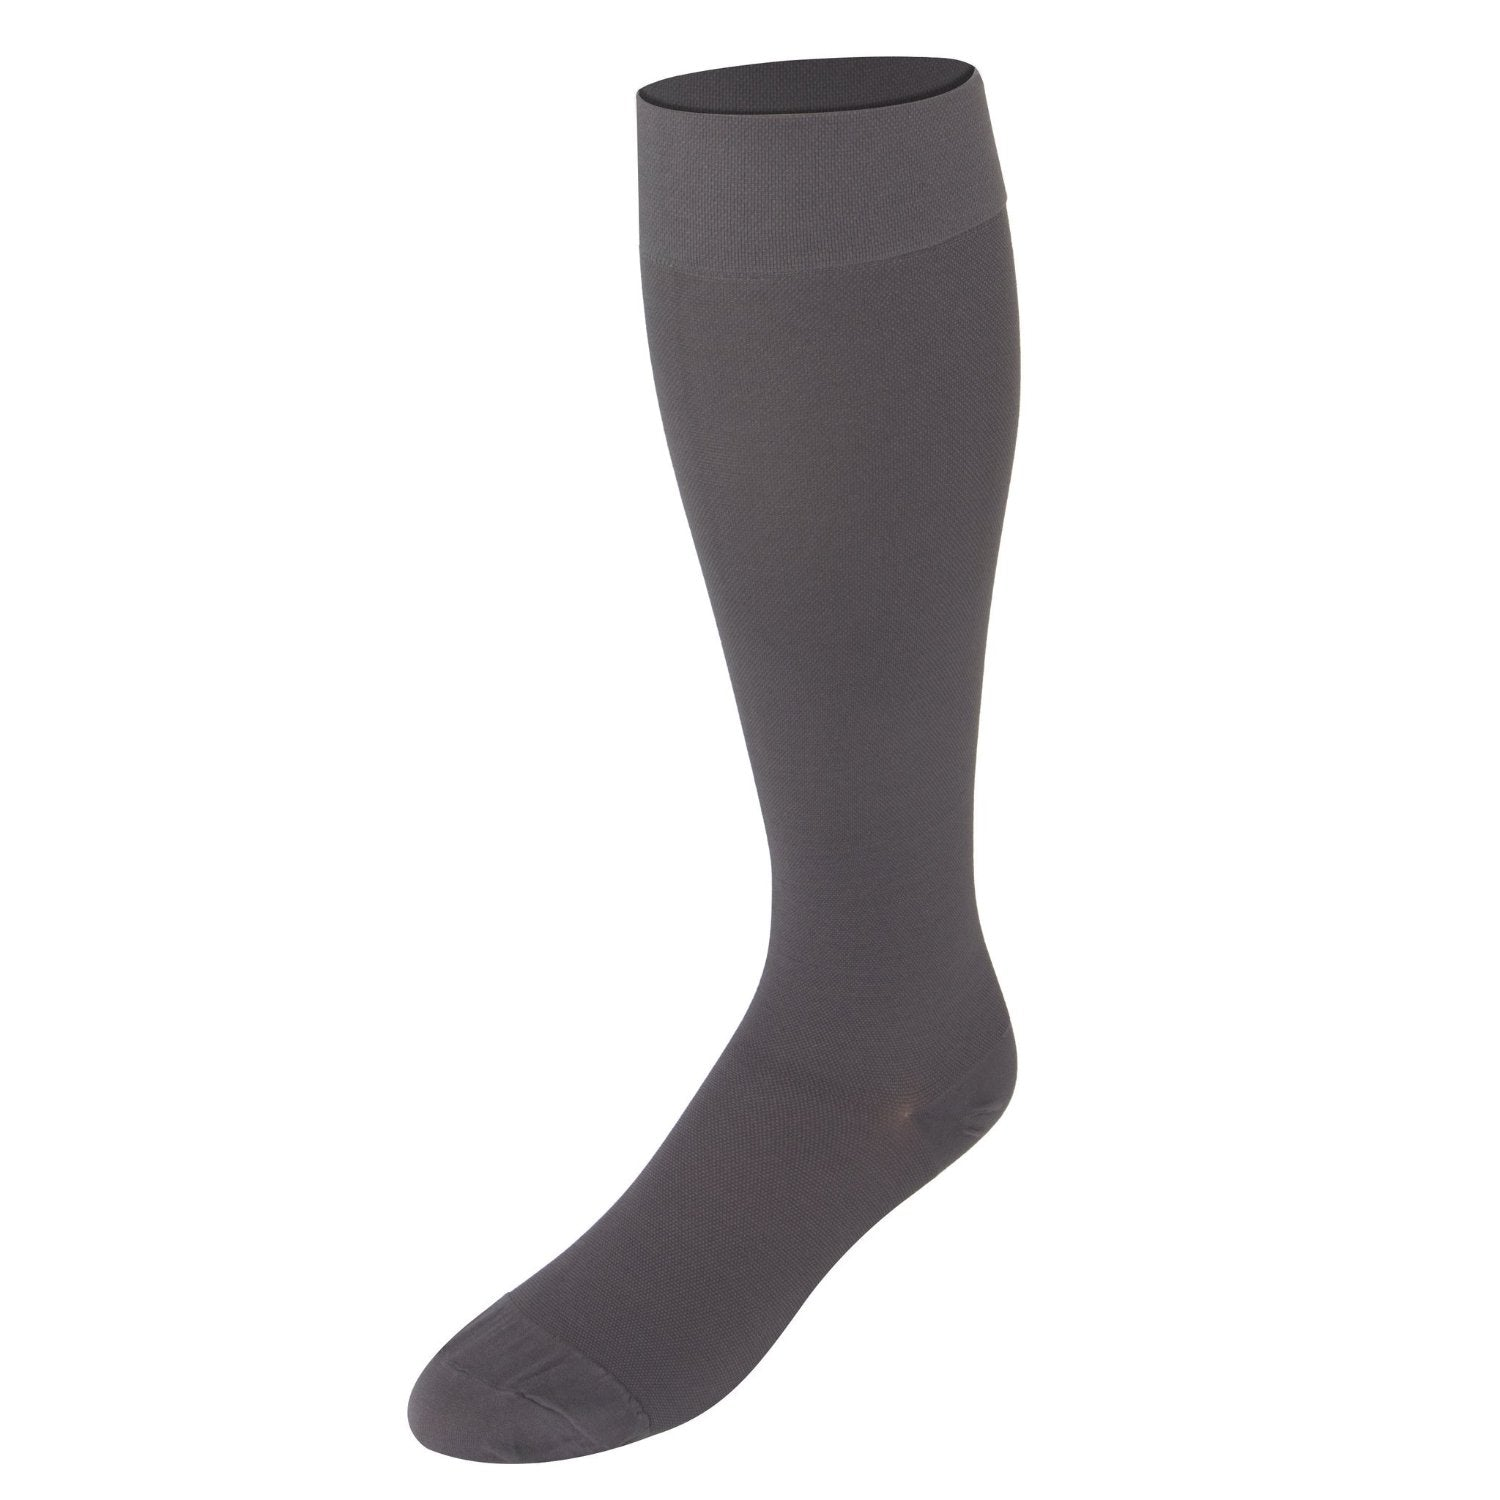 8865 Below Knee Closed Toe Grey Stockings